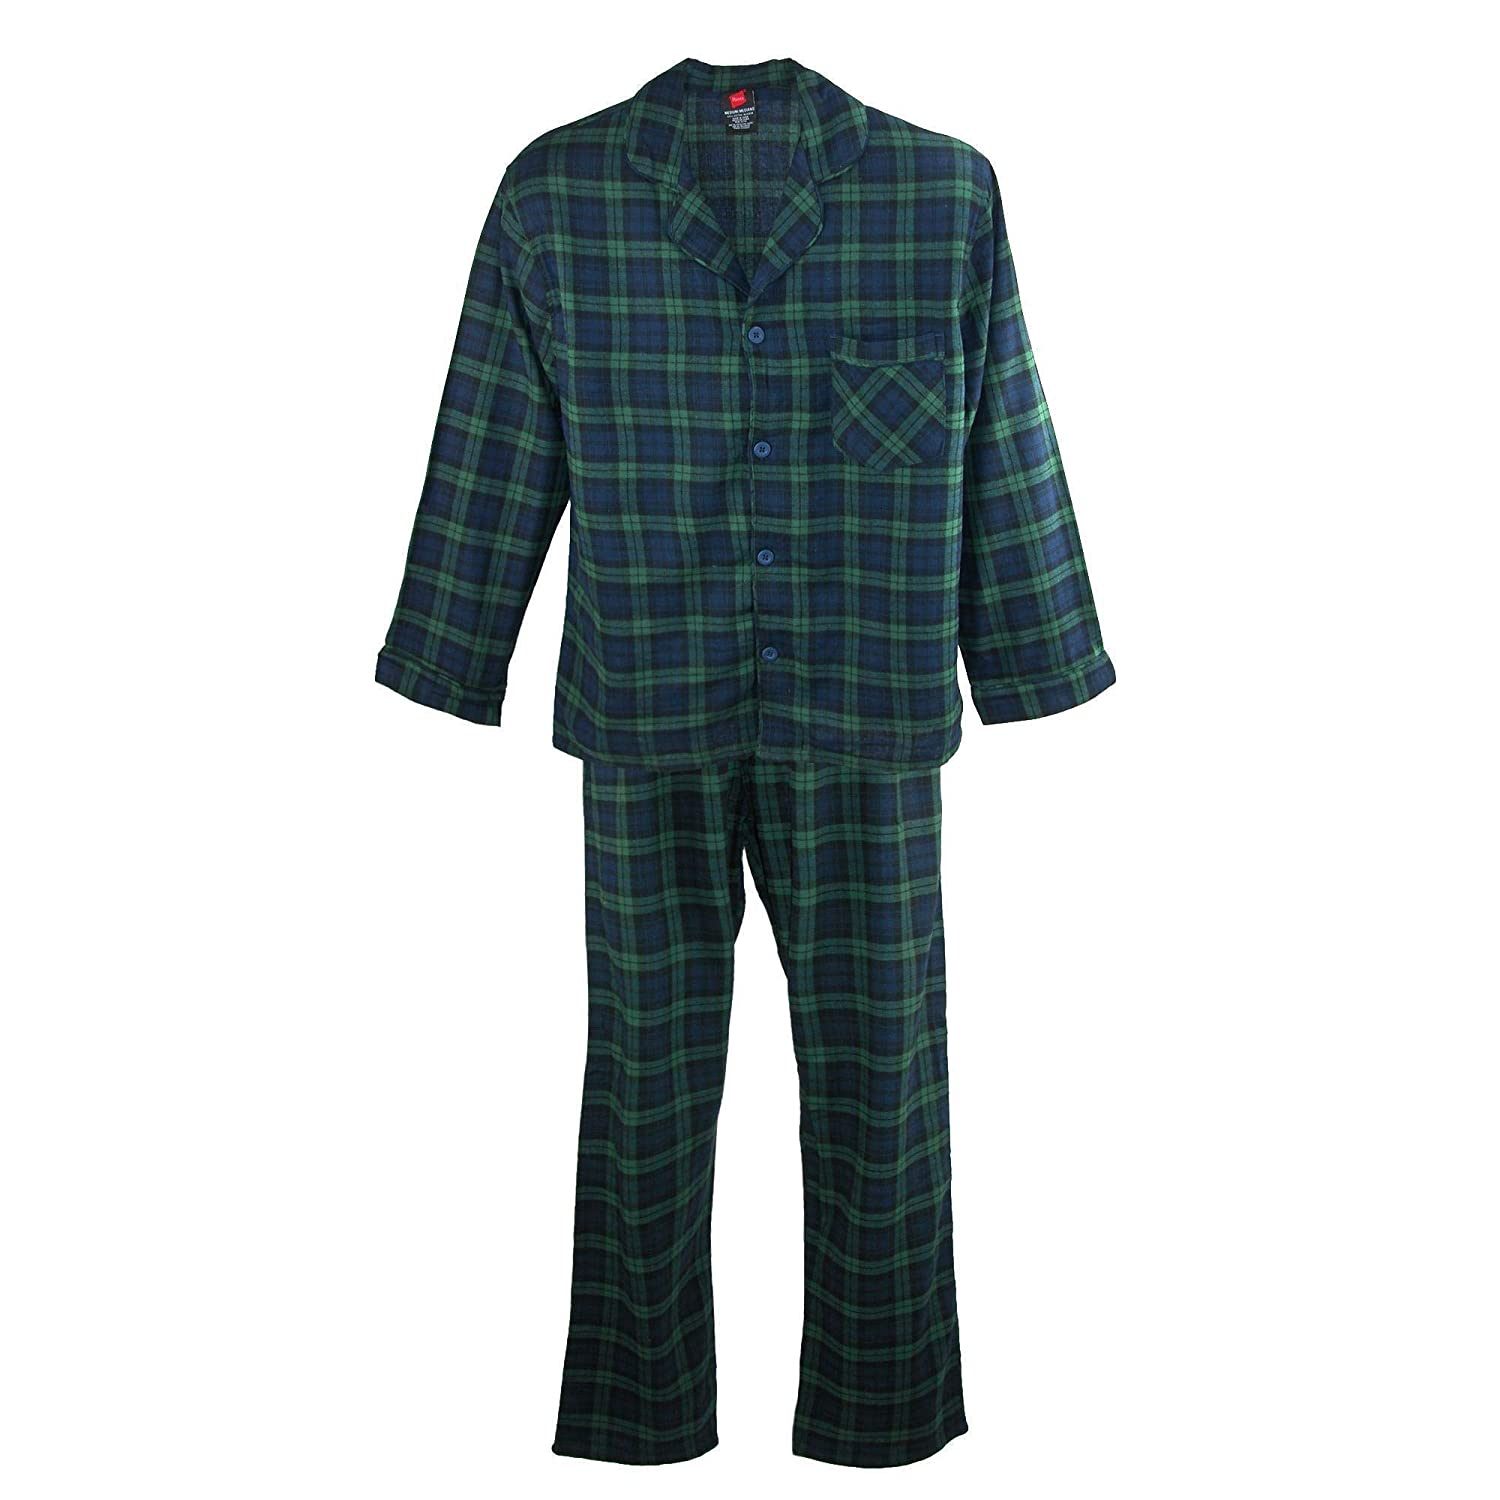 Hanes Men's Cotton Flannel Pajama Set, XL, Hunter